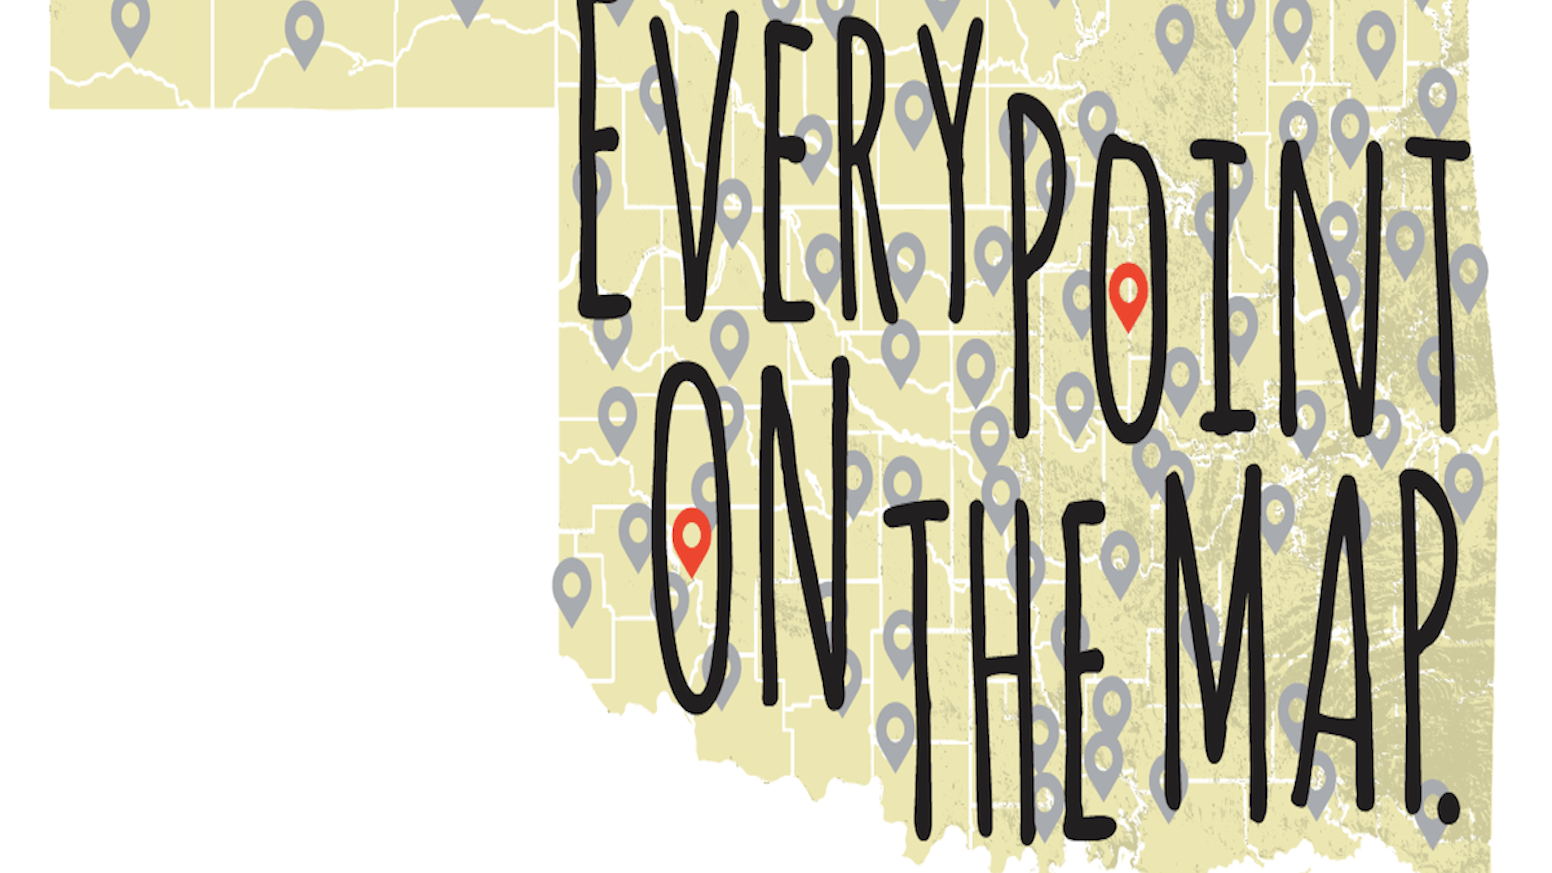 A multi-media, cultural quest to complete a meaningful conversation with one person at each of the 593 points on State of Oklahoma map. Visit us at http://www.reddirtchronicles.com/